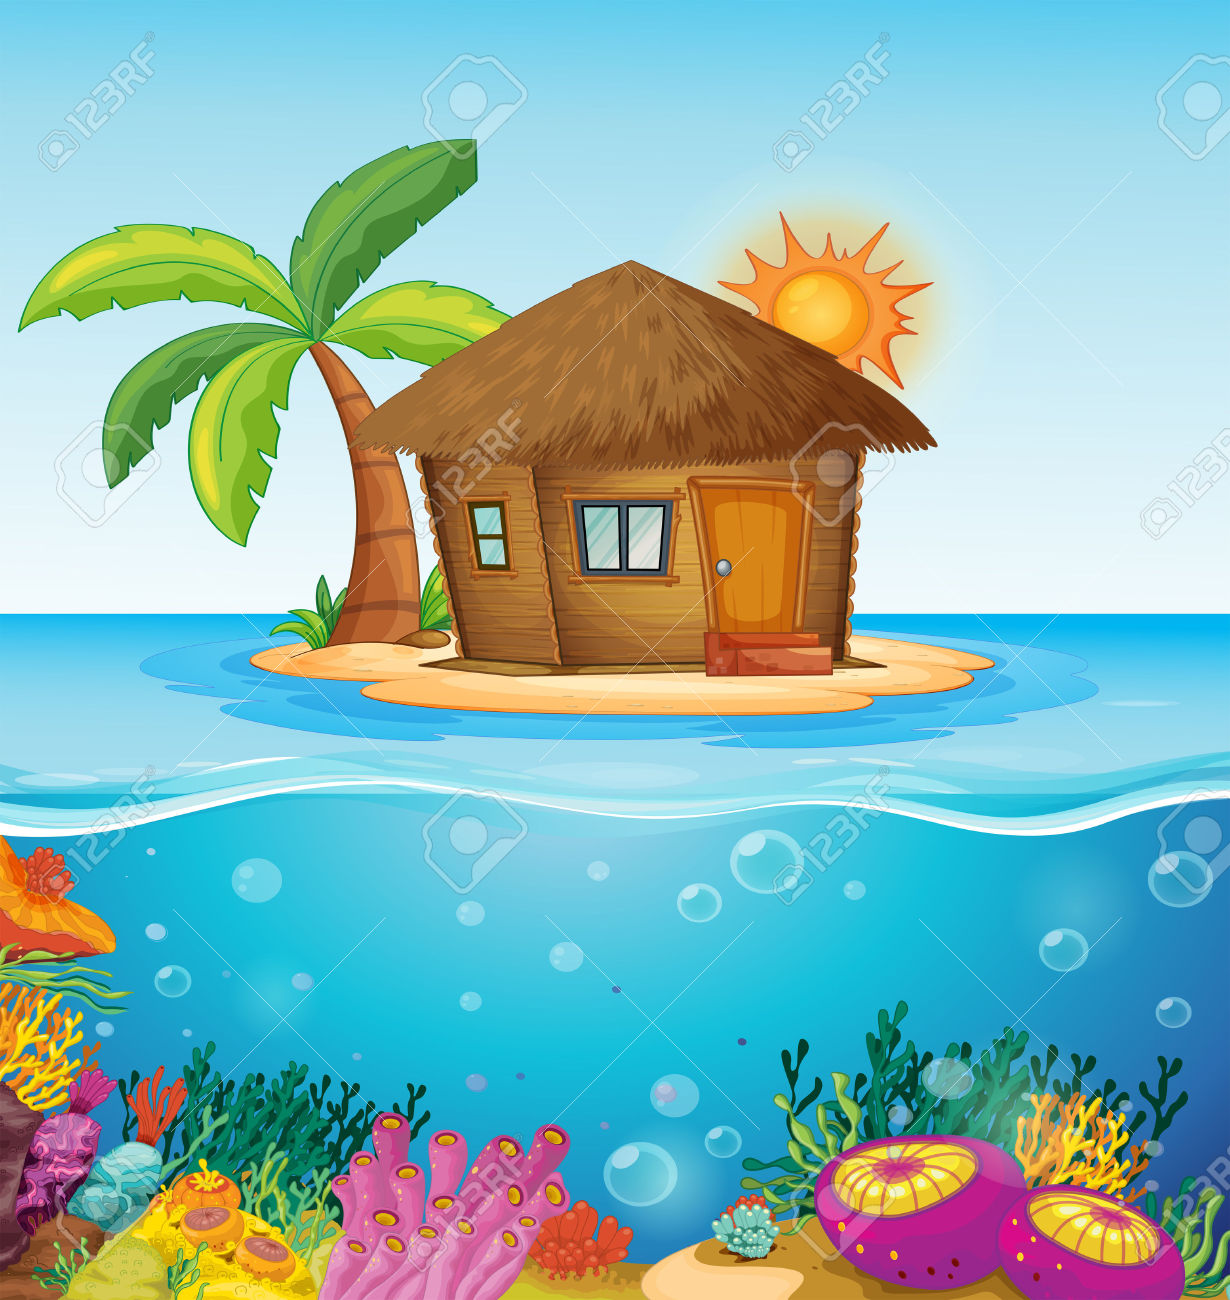 Illustration Of A House On A Desert Island Royalty Free Cliparts.